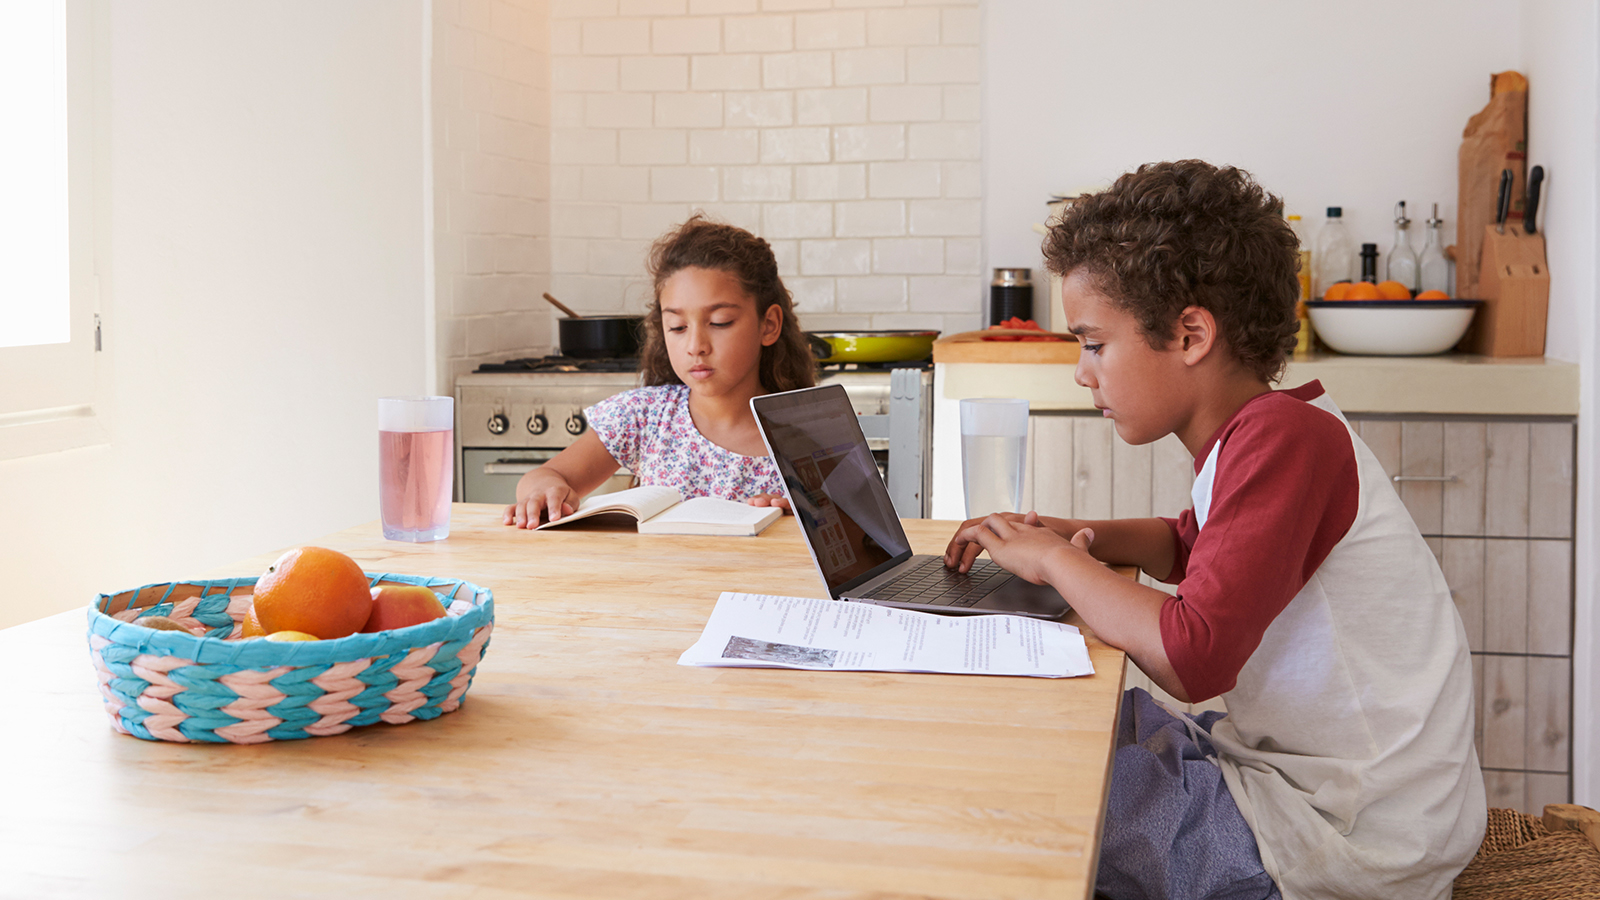 Two students do their homework at a kitchen table